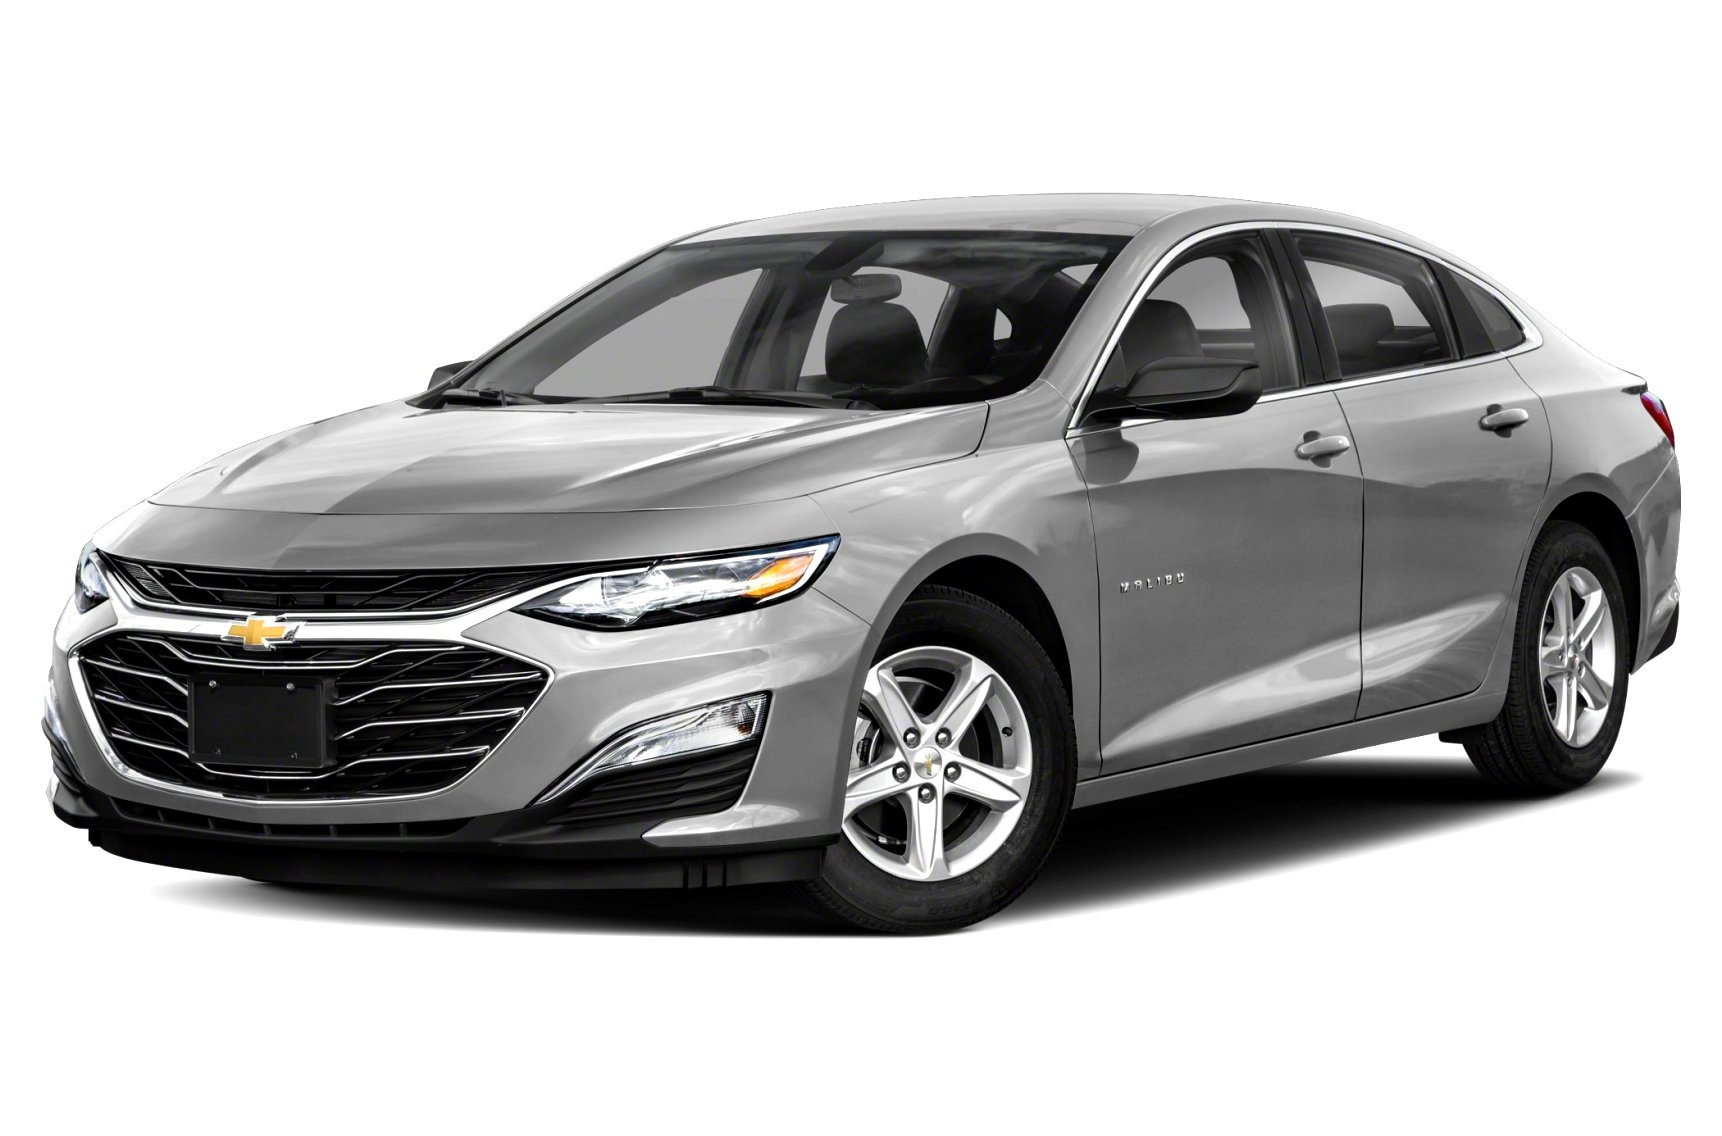 chevrolet malibu 2020 price Concept and Review